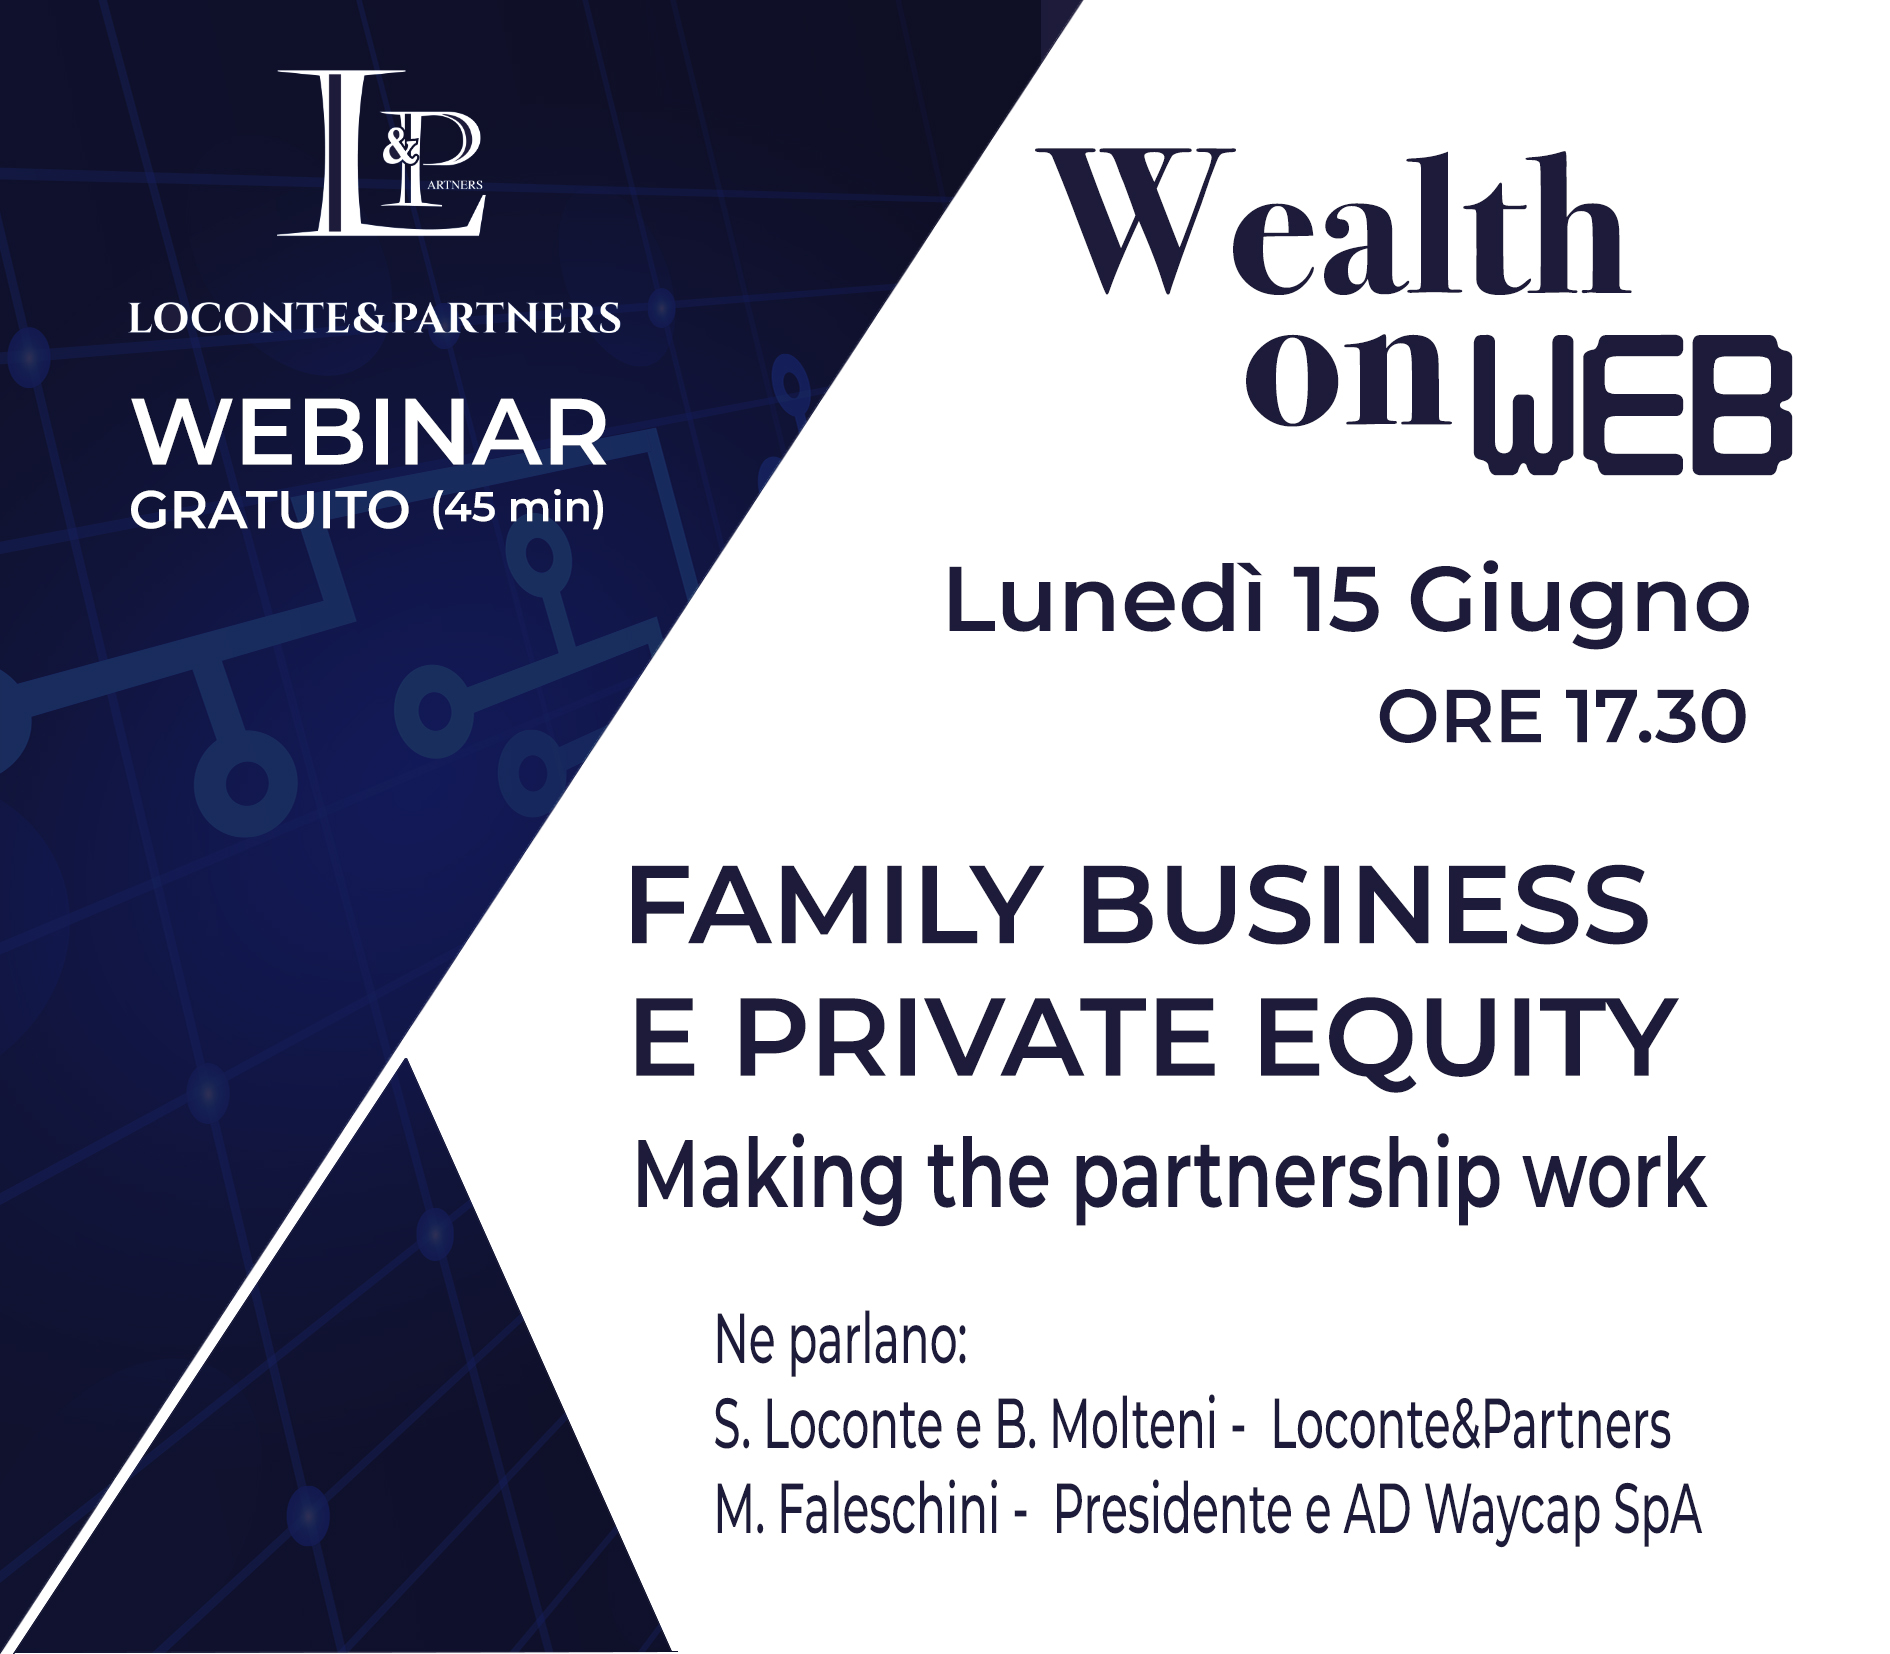 WEALTH ON WEB 15 GIUGNO